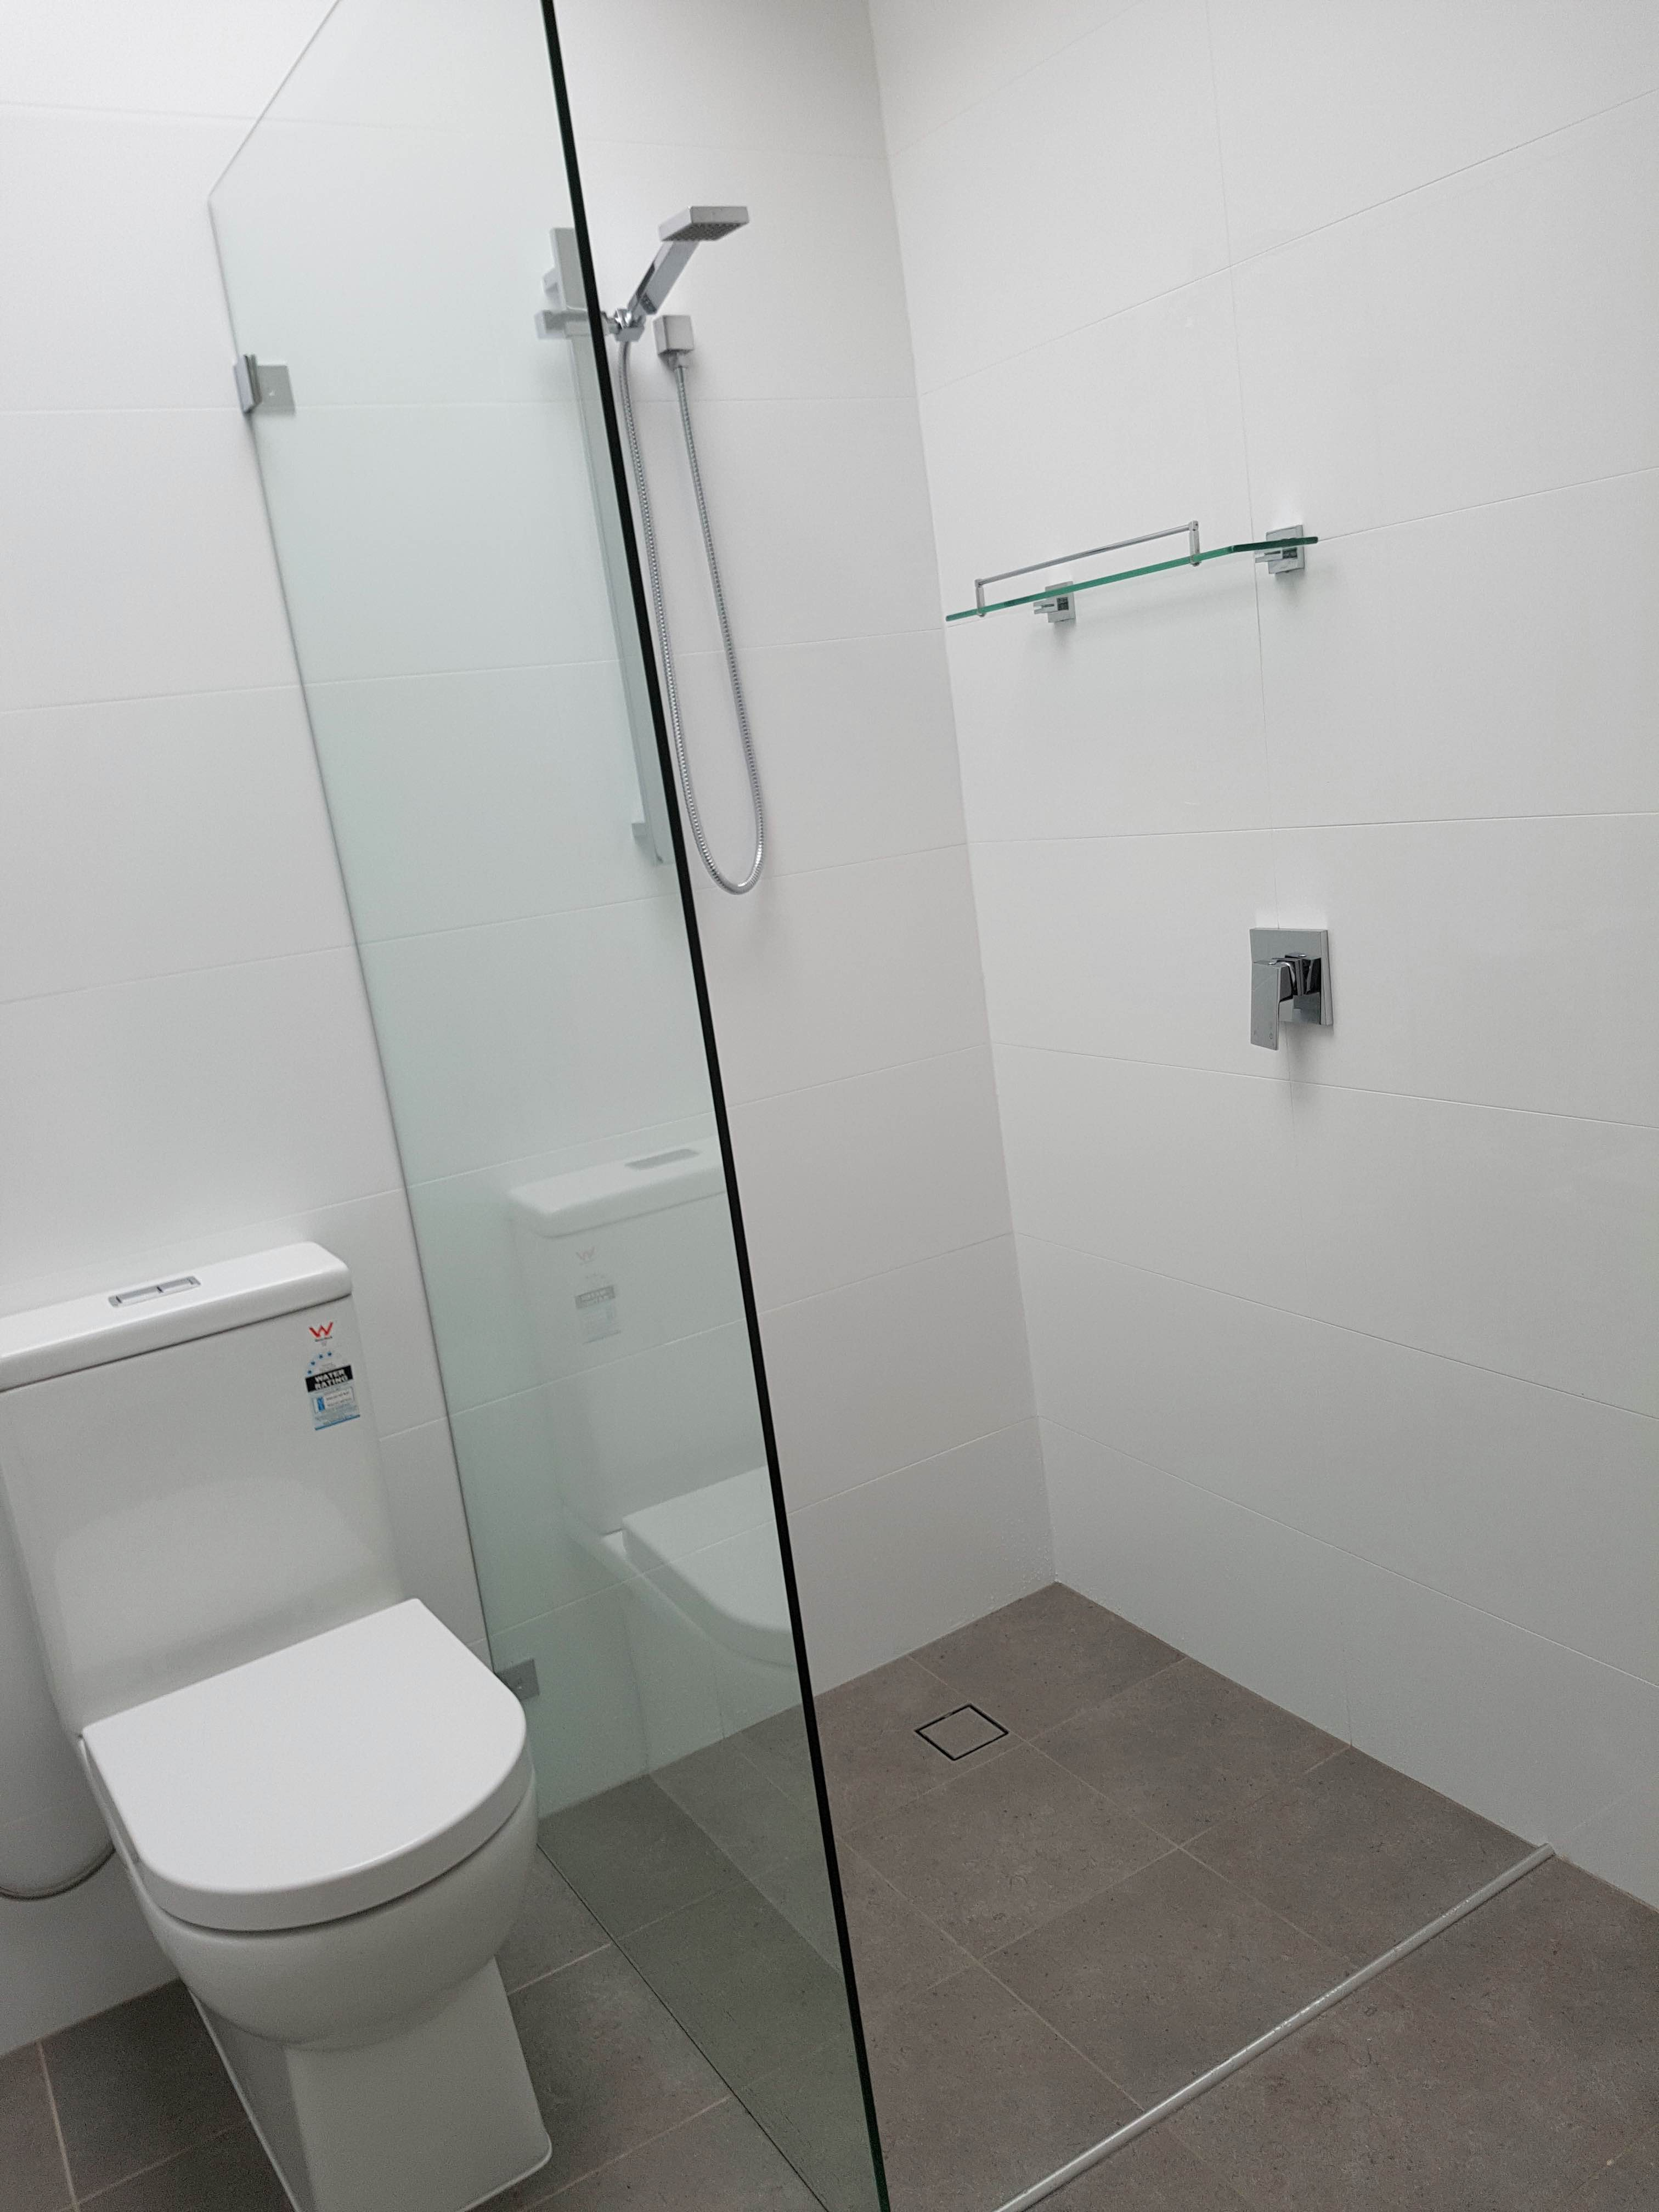 Bathroom Renovation In Mosman, Sydney